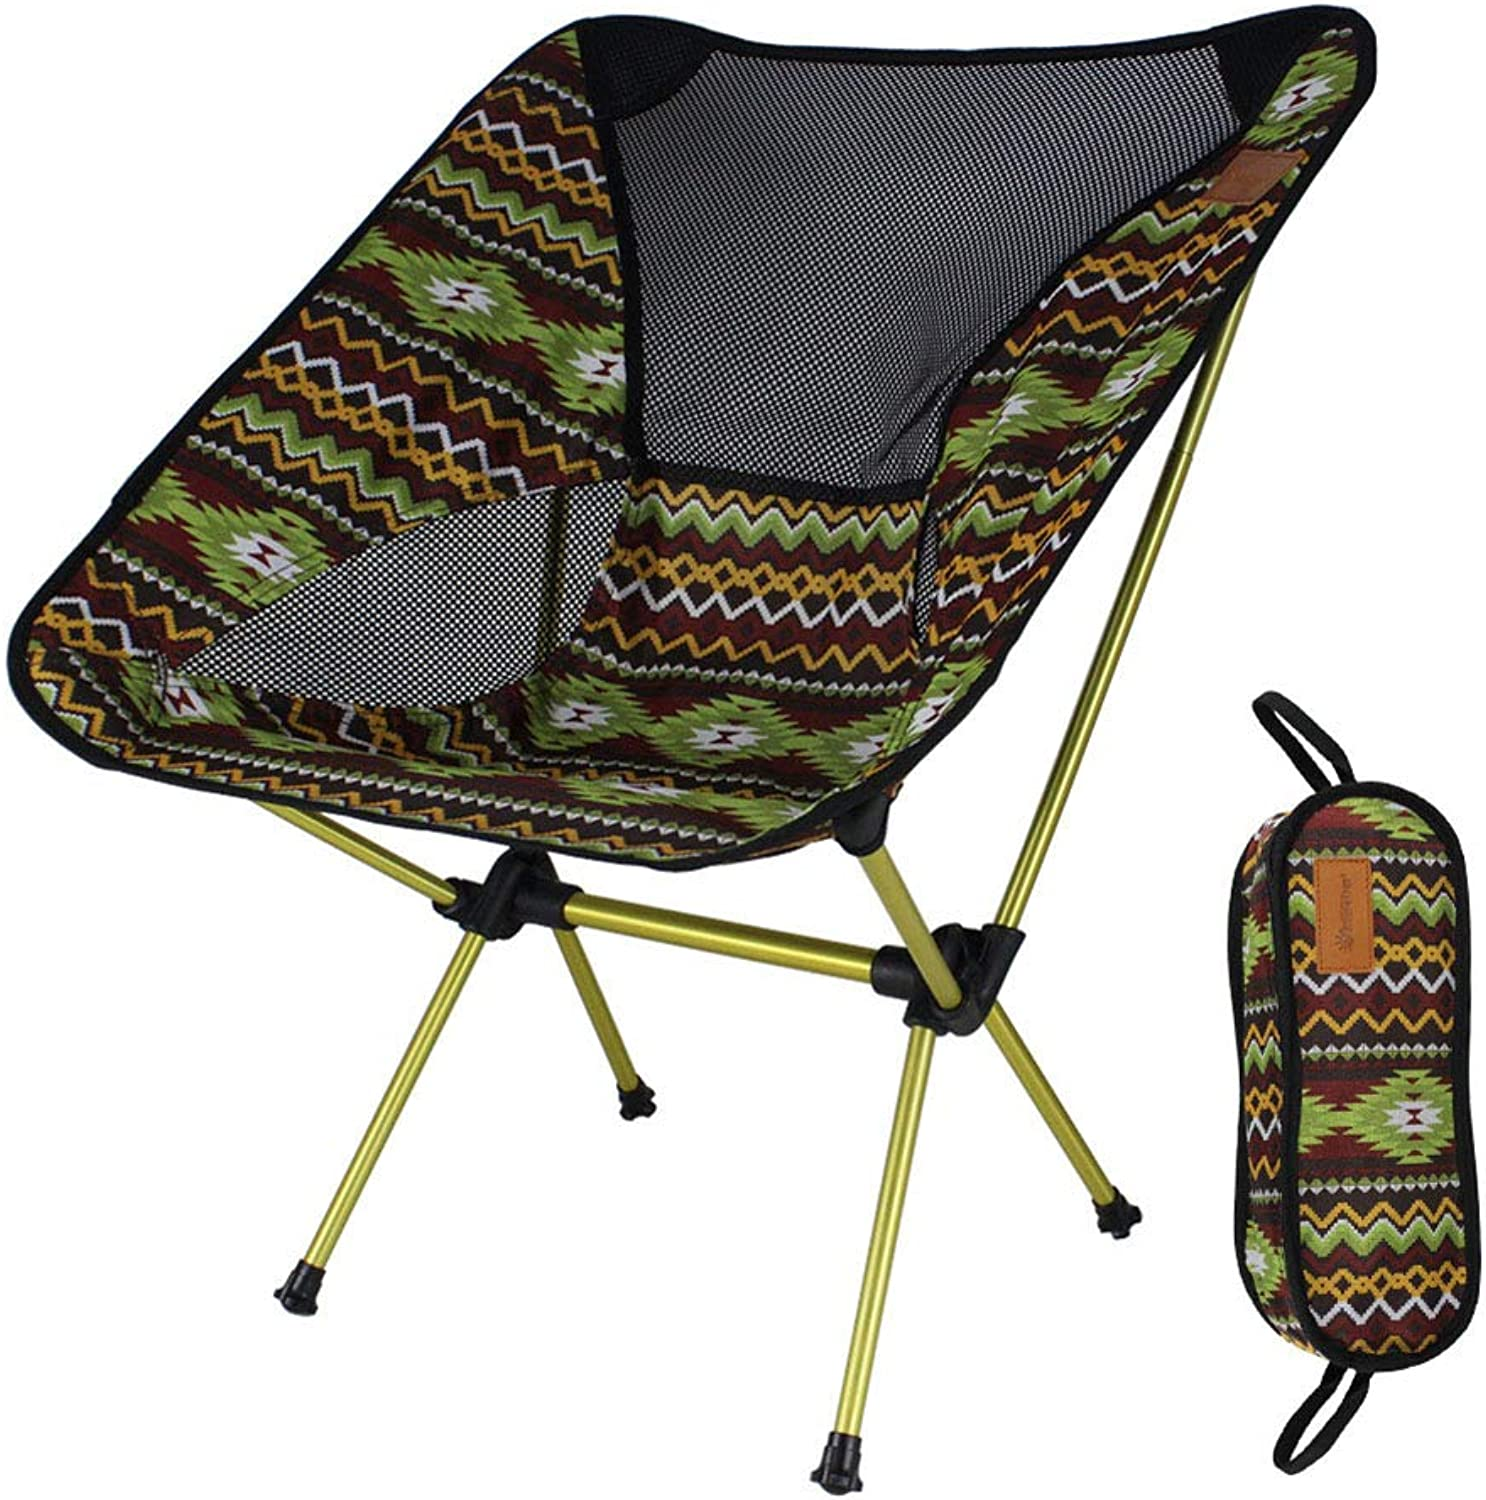 GFEI Mini Portable Folding Stool  Comes with an Outdoor Portable Storage Bag  Outdoor Folding Chair  for BBQ,Camping,Fishing,Travel,Hiking,Garden,Beach,Green